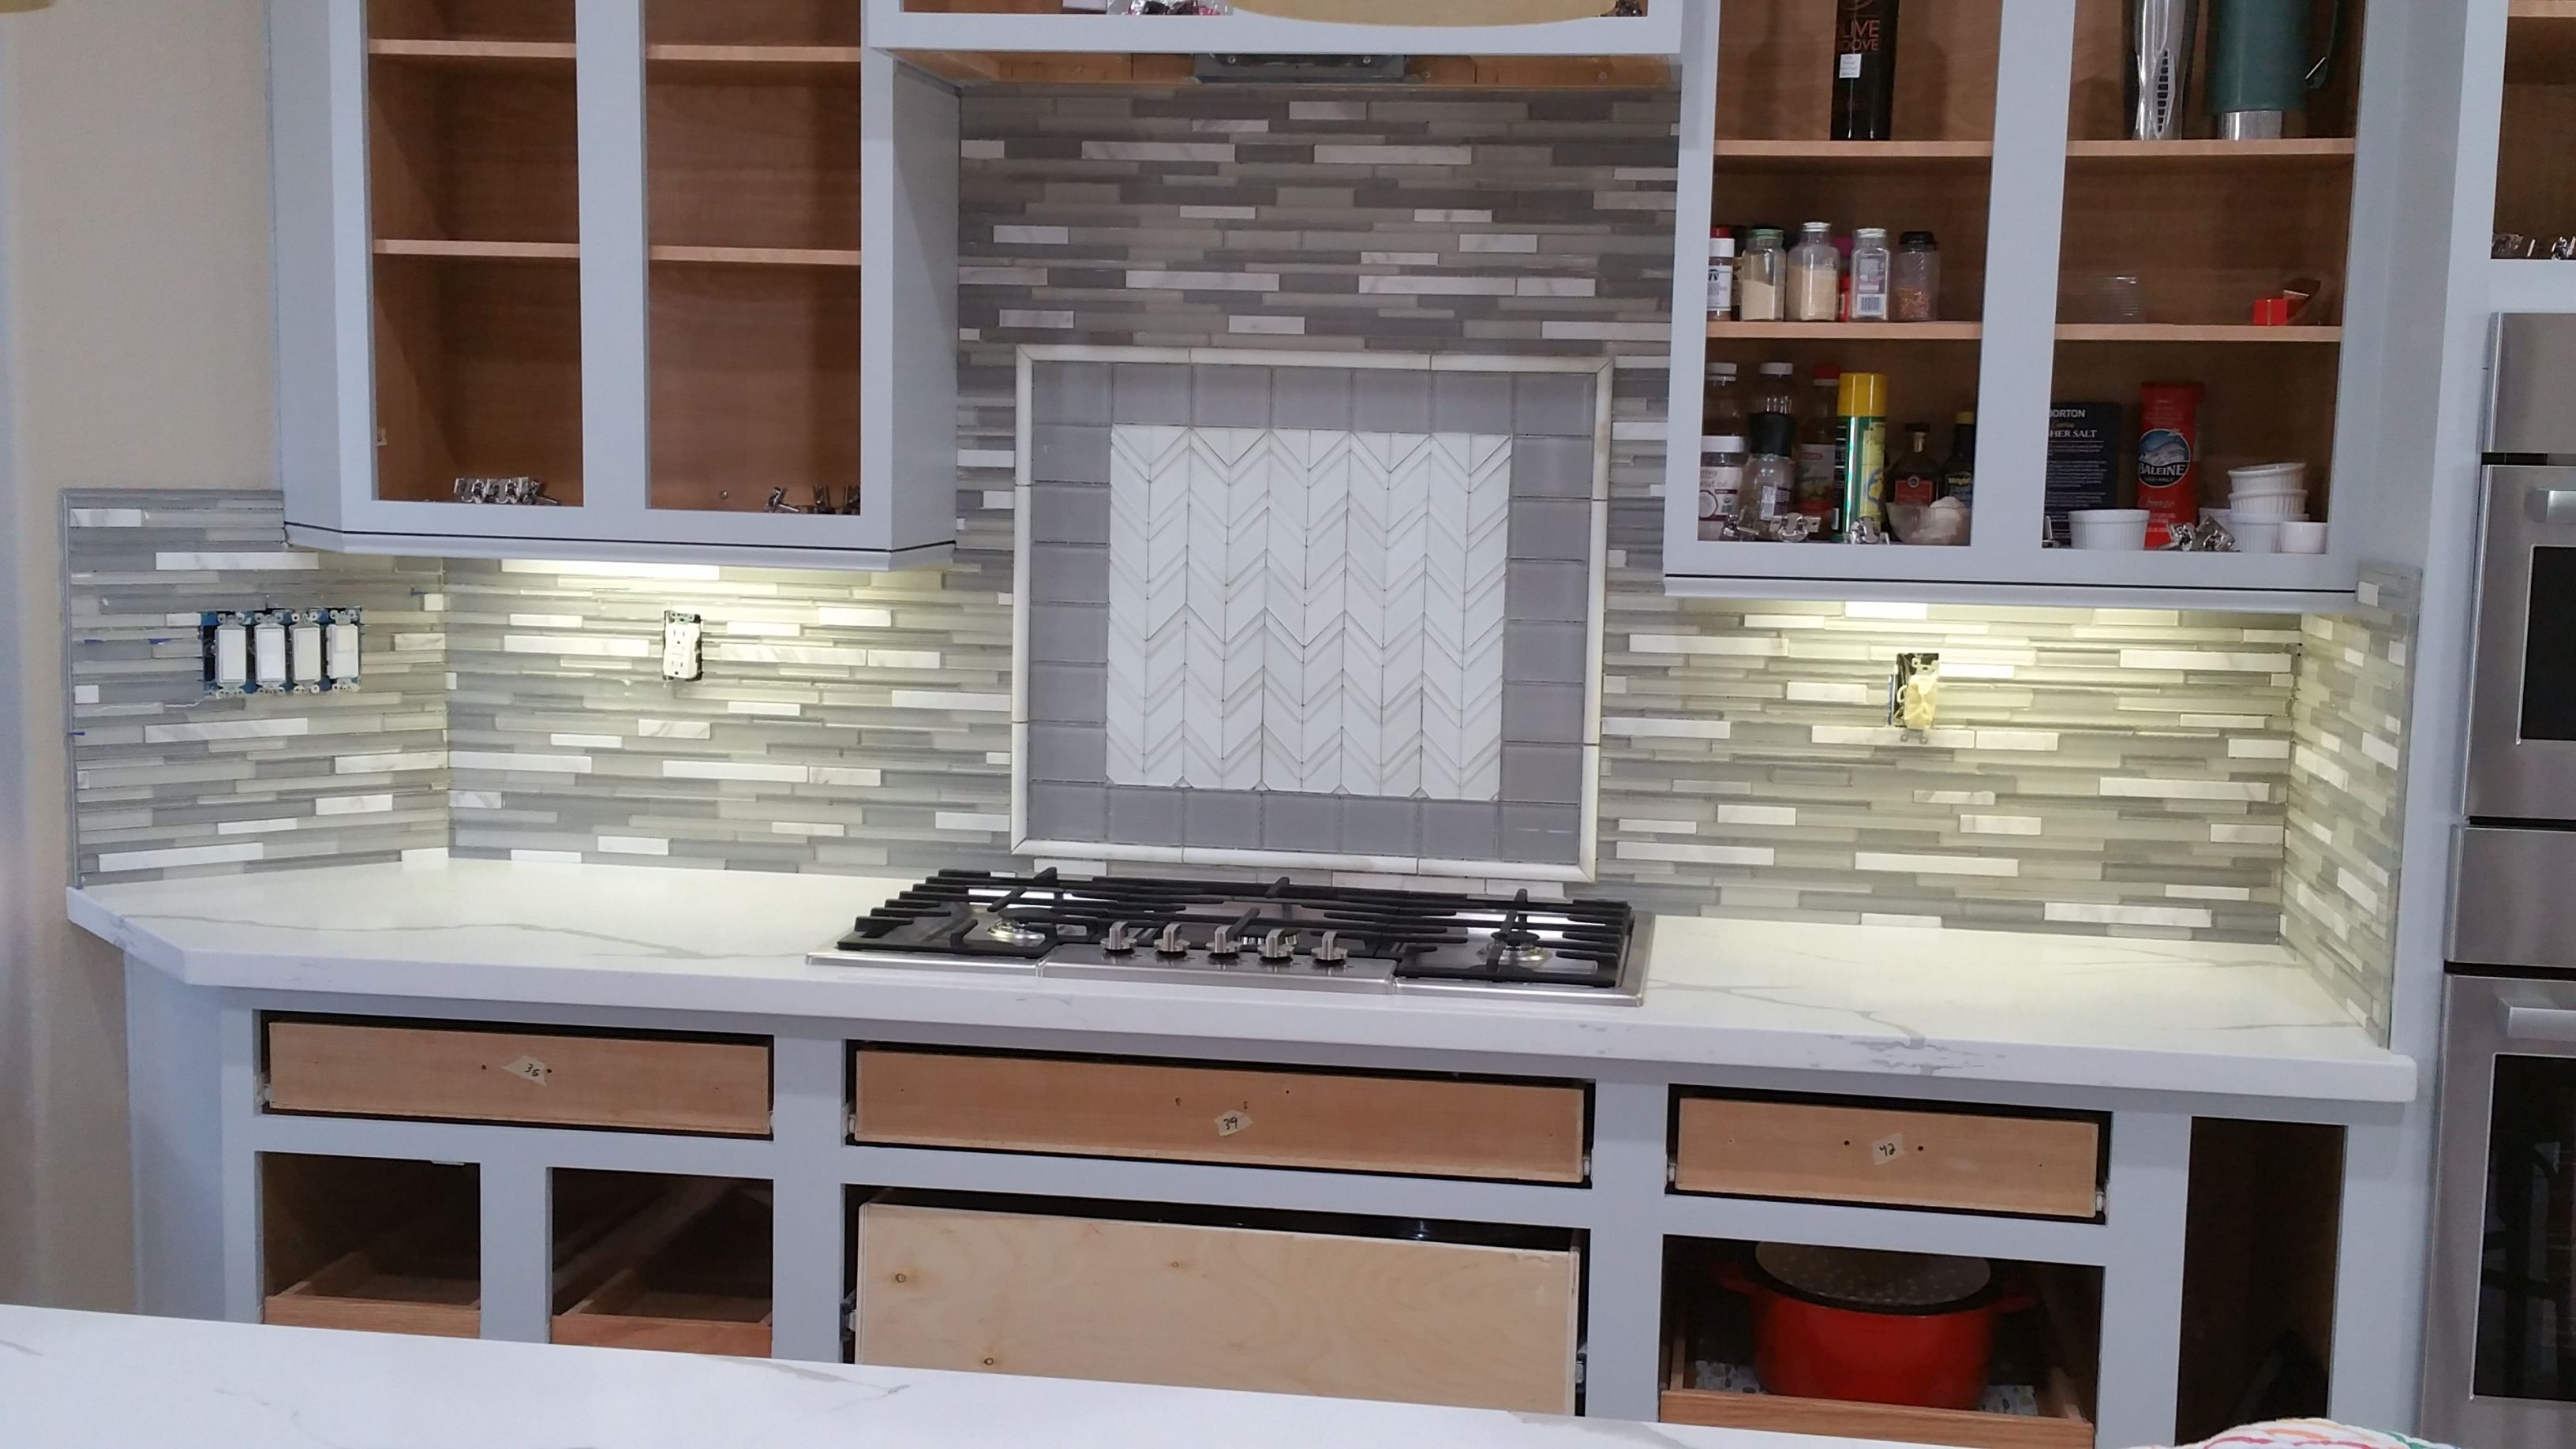 This remodelmonday features our Soh & Islandia glass tiles on the backsplash and the lovely